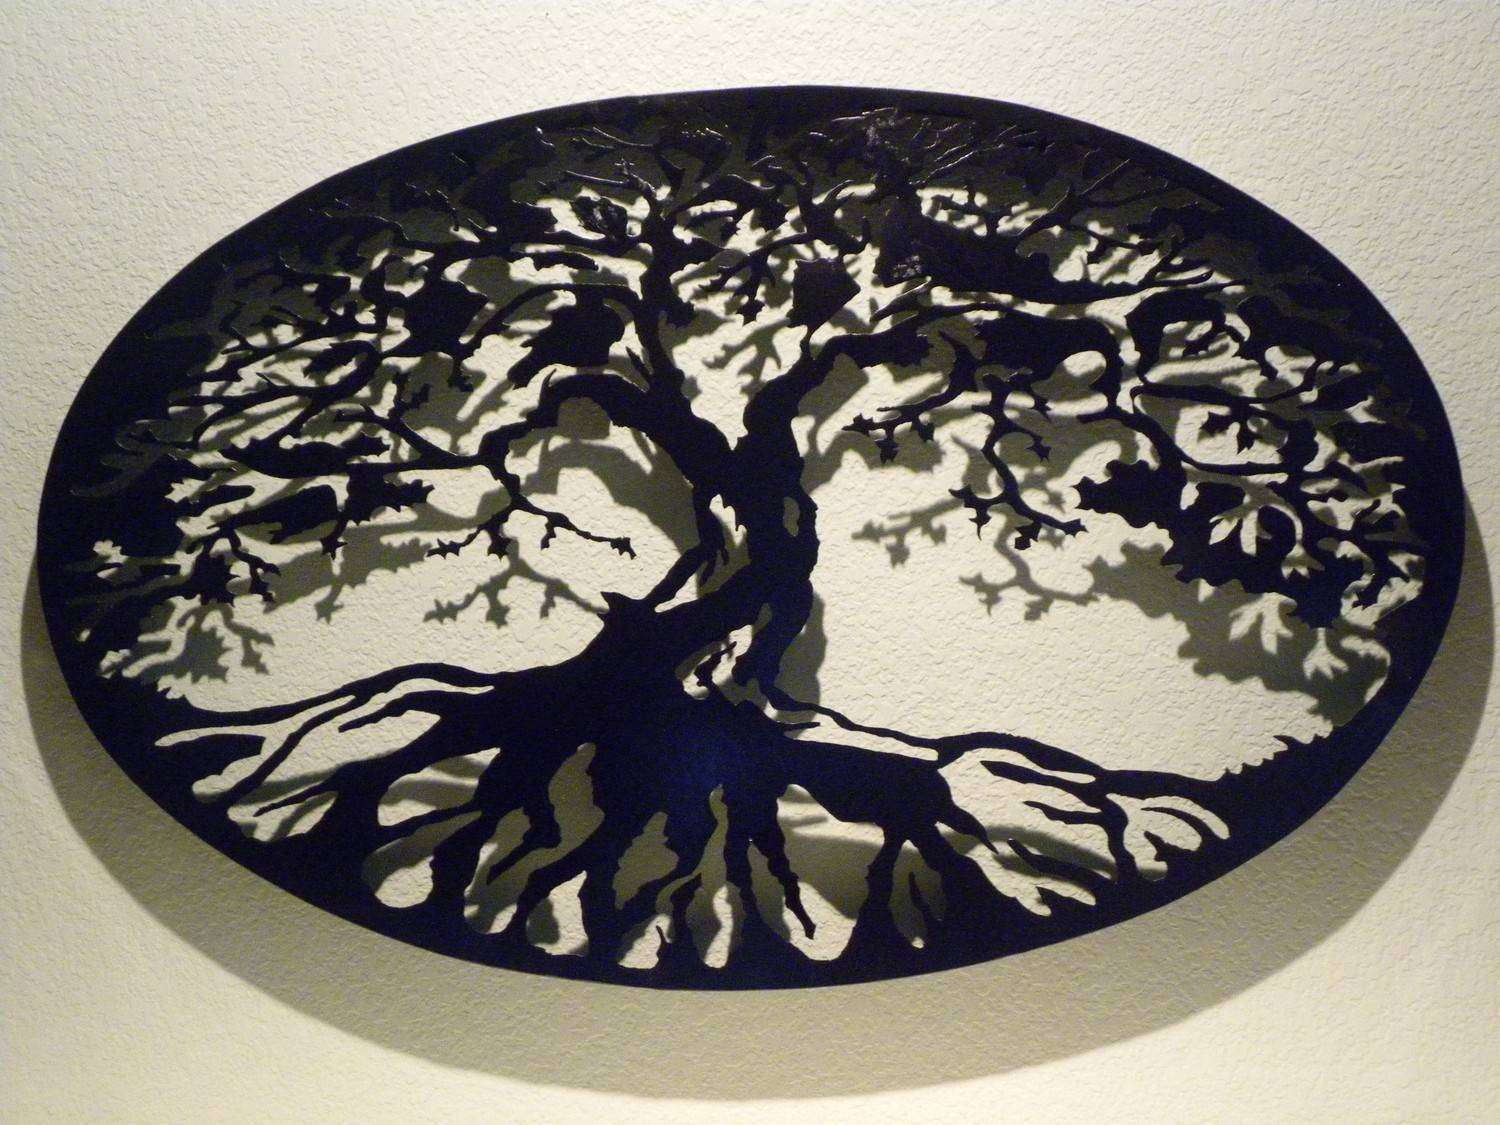 Wall Art Design Ideas: Dimension Tree Of Life Metal Wall Art Black With Regard To Most Recent Large Tree Of Life Metal Wall Art (View 2 of 20)